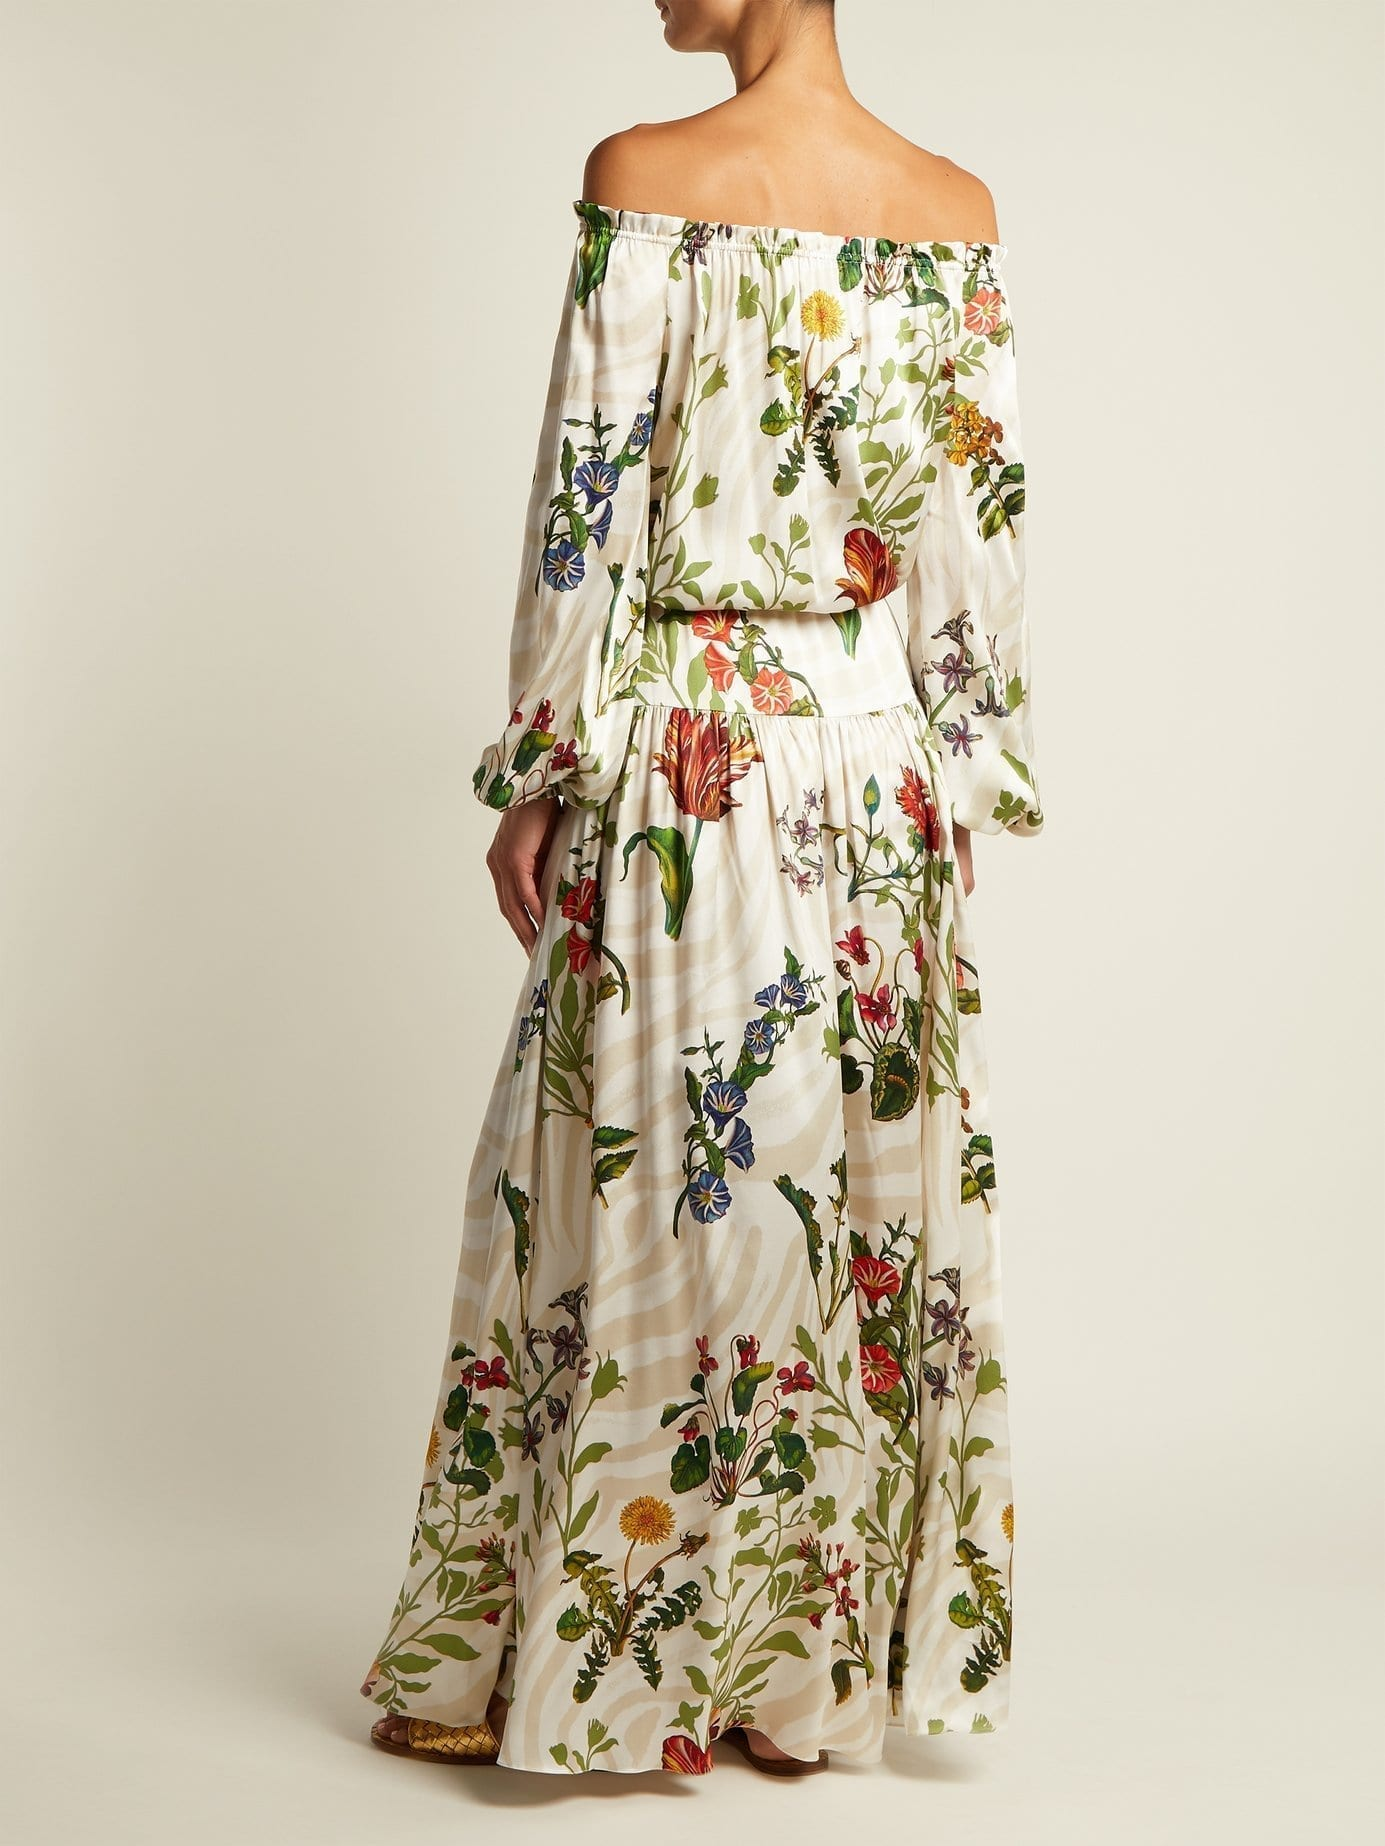 ADRIANA IGLESIAS Creek Silk Blend White / Floral Printed Gown - We ...